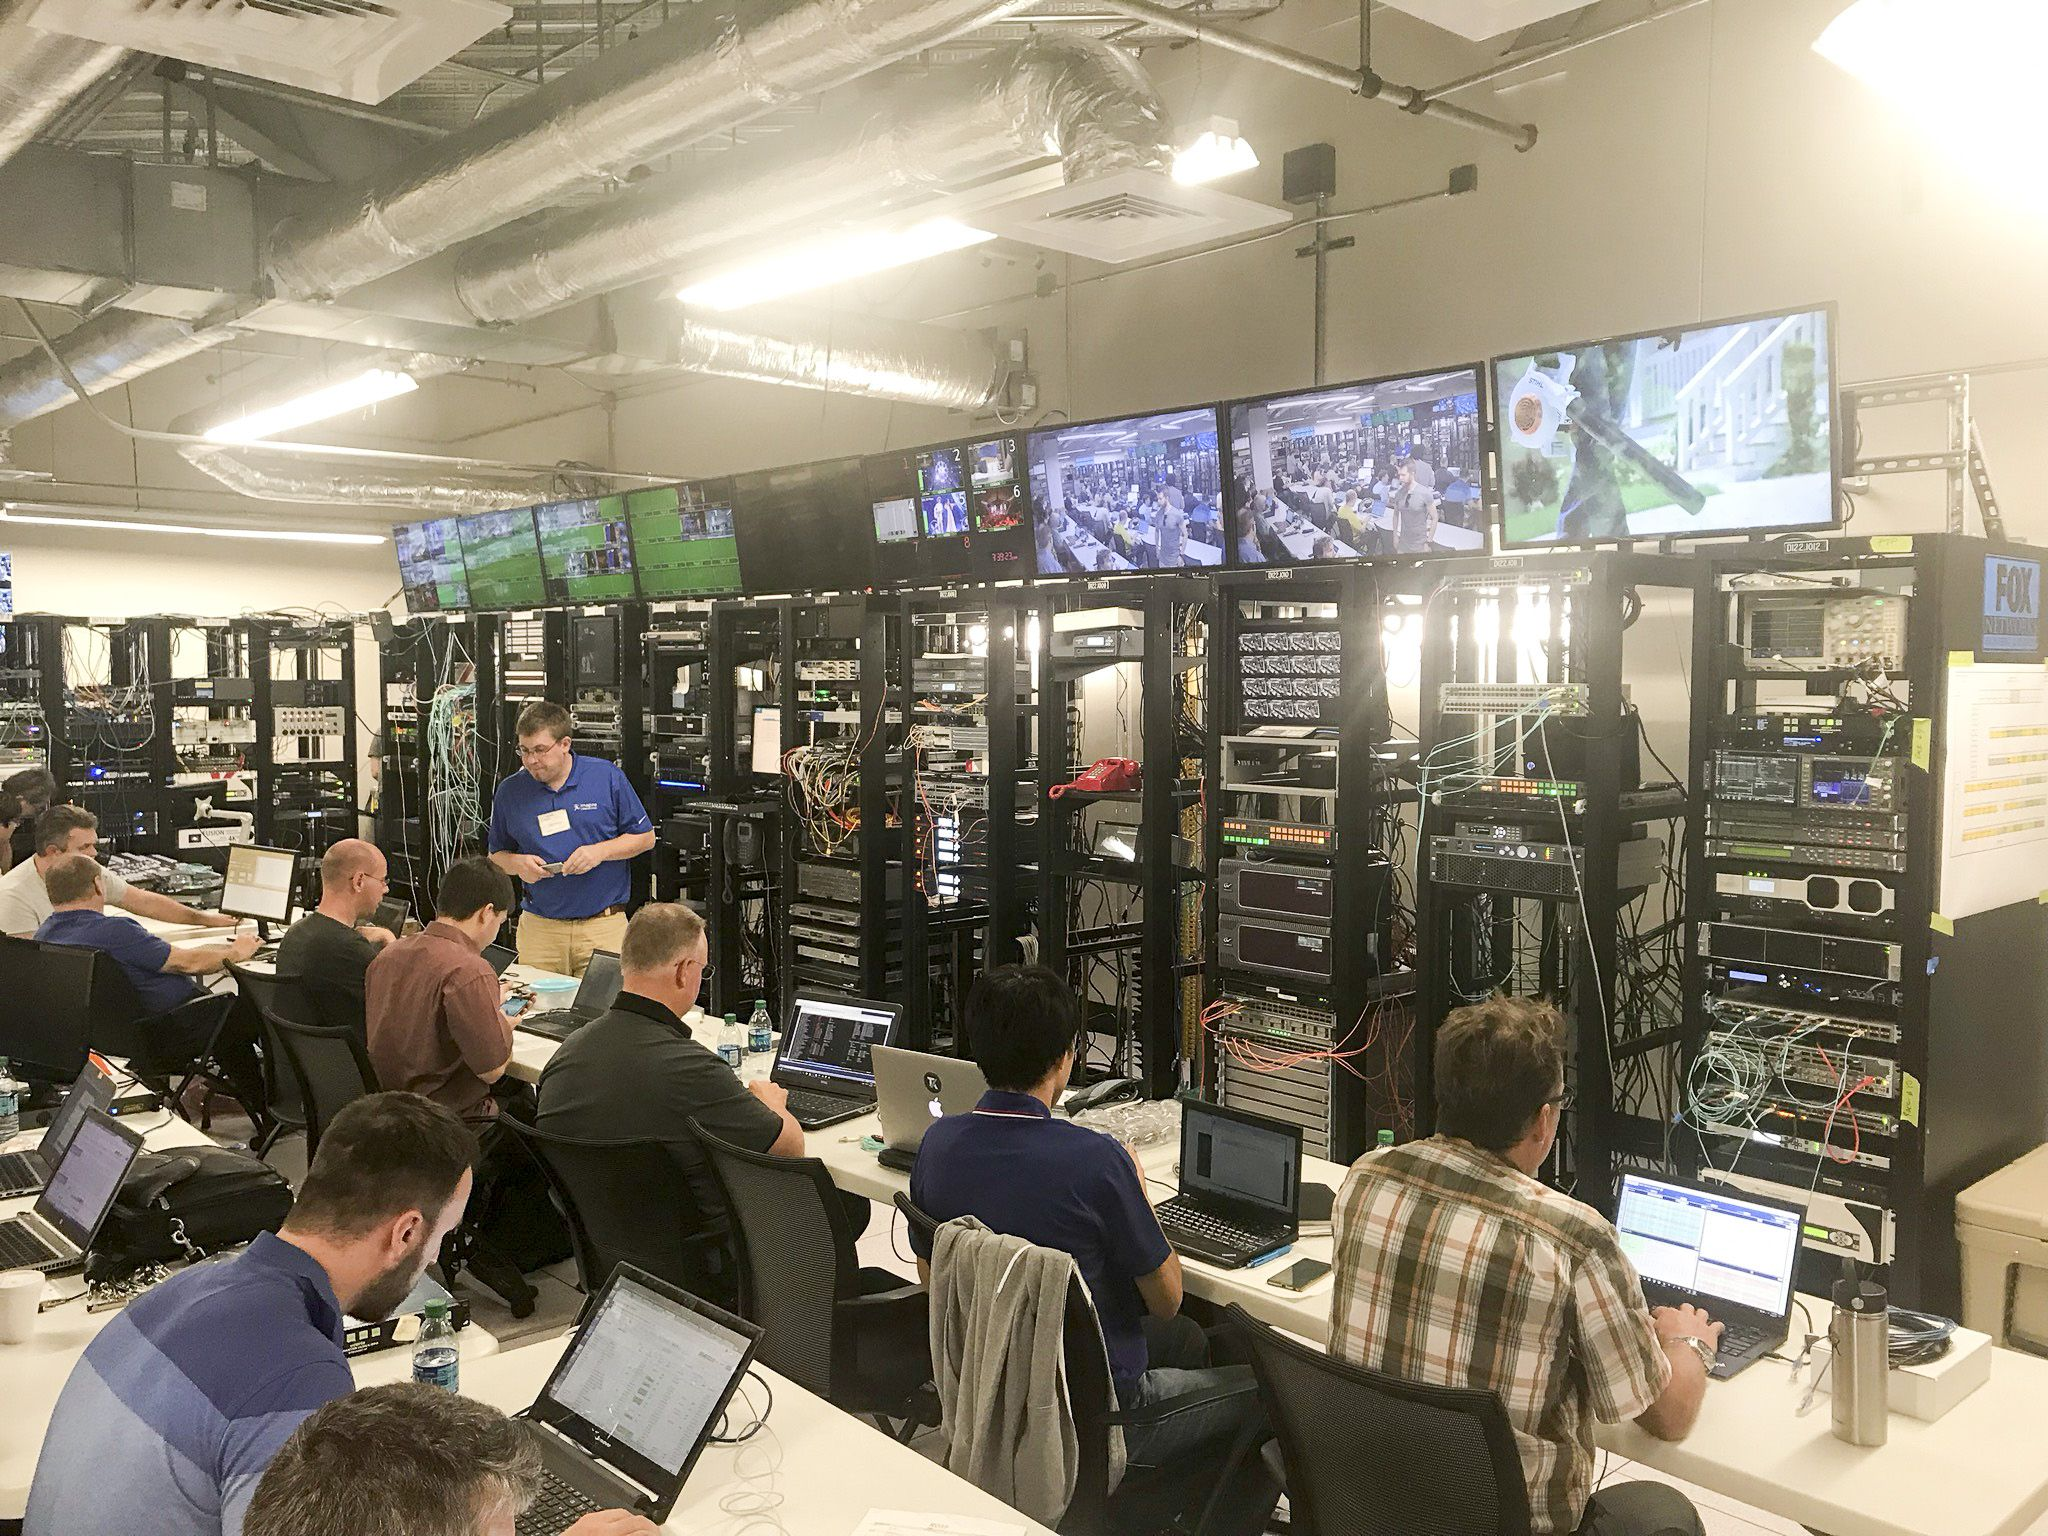 #RIEDEL took part in the JT-NM and AIMS interoperability workshop, at Fox NE&O in Houston. At this workshop, over 40 companies and nearly 100 engineers tested their implementations of the current draft versions of SMPTE 2110-10, -20 and -30. Find out more about RIEDEL's IP solutions as part of the largest IP Showcase at IBC in E.106.